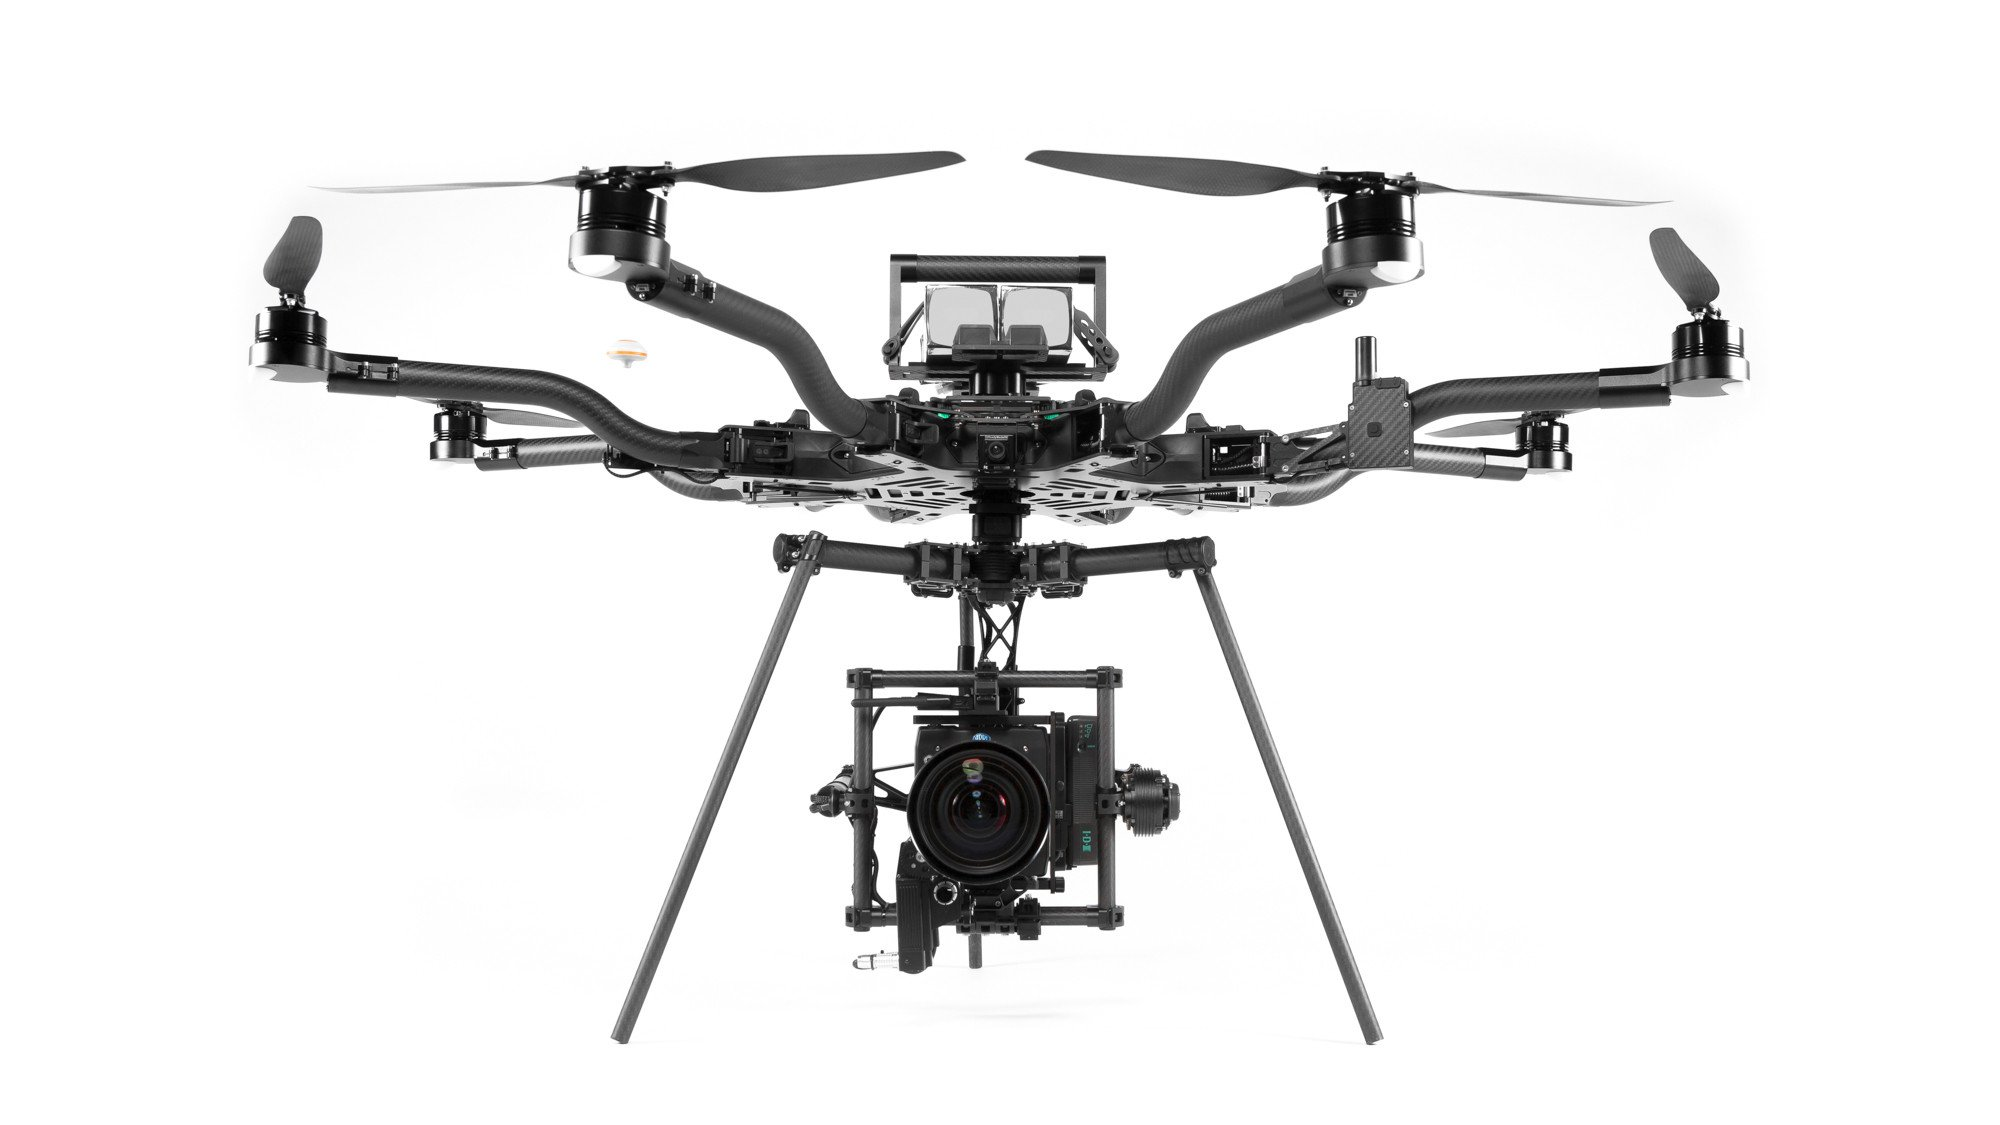 Freefly Alta 8 Octocopter Heavy Lift videography and creative